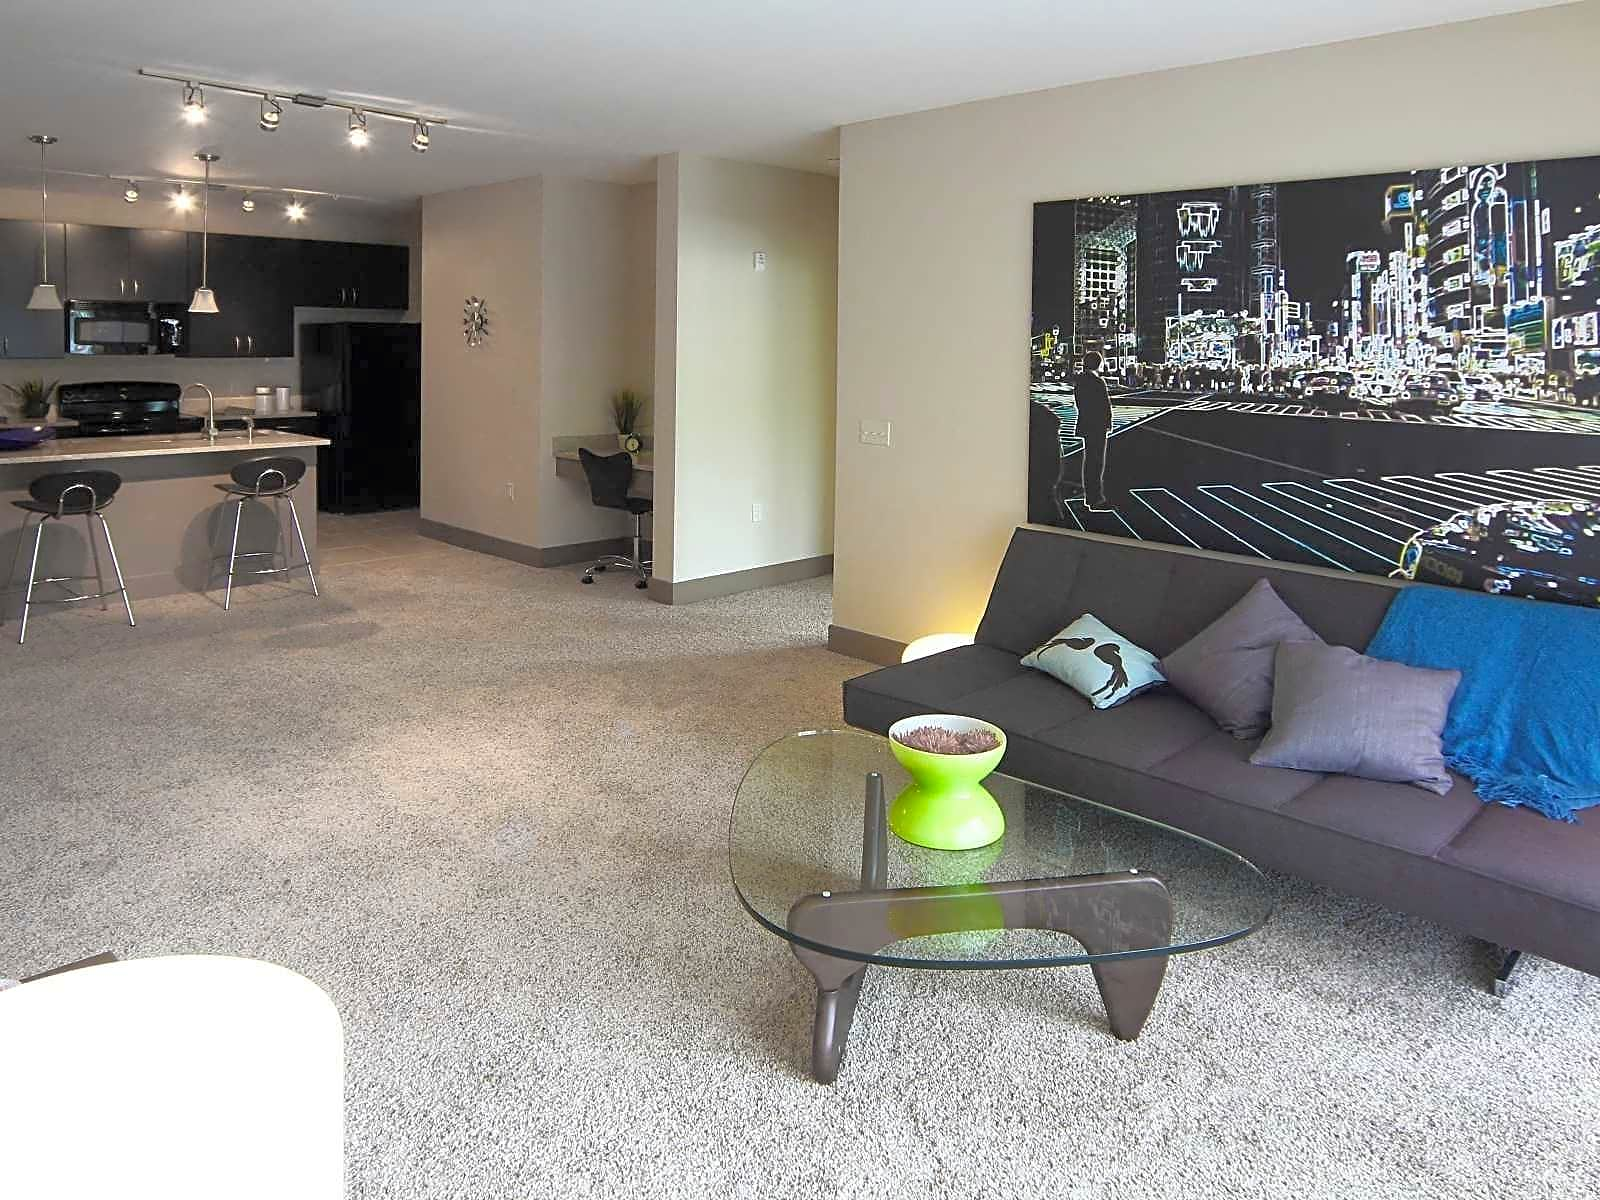 Apartments Near Central State Lofts At Willow Creek for Central State University Students in Wilberforce, OH